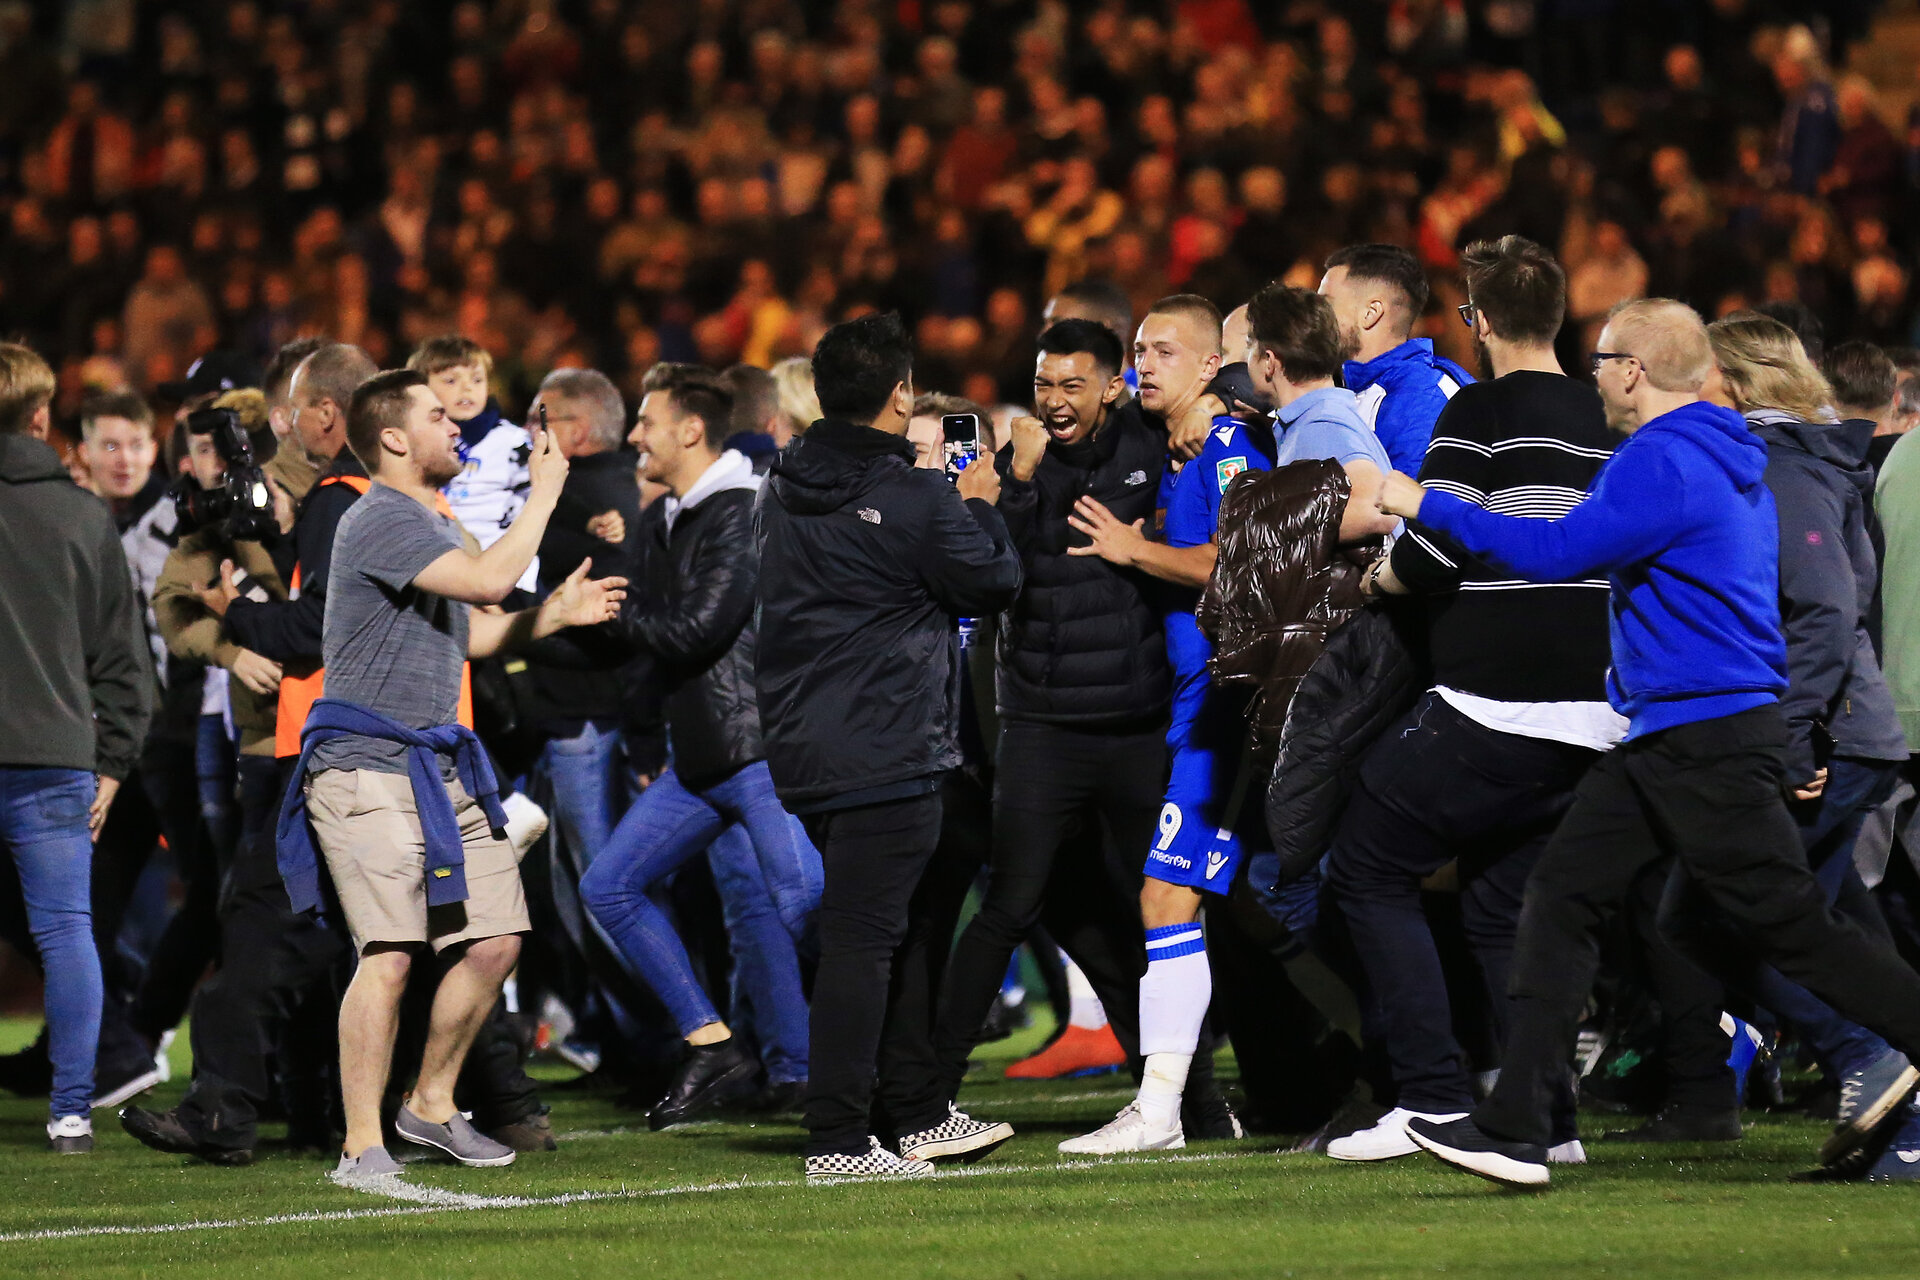 COLCHESTER, ENGLAND - SEPTEMBER 24: Luke Norris of Colchester United is surrounded by fans after they invade the pitch following Colchester United victory in the penalty shoot during the Carabao Cup Third Round match between Colchester United and Tottenham Hotspur at JobServe Community Stadium on September 24, 2019 in Colchester, England. (Photo by Stephen Pond/Getty Images)